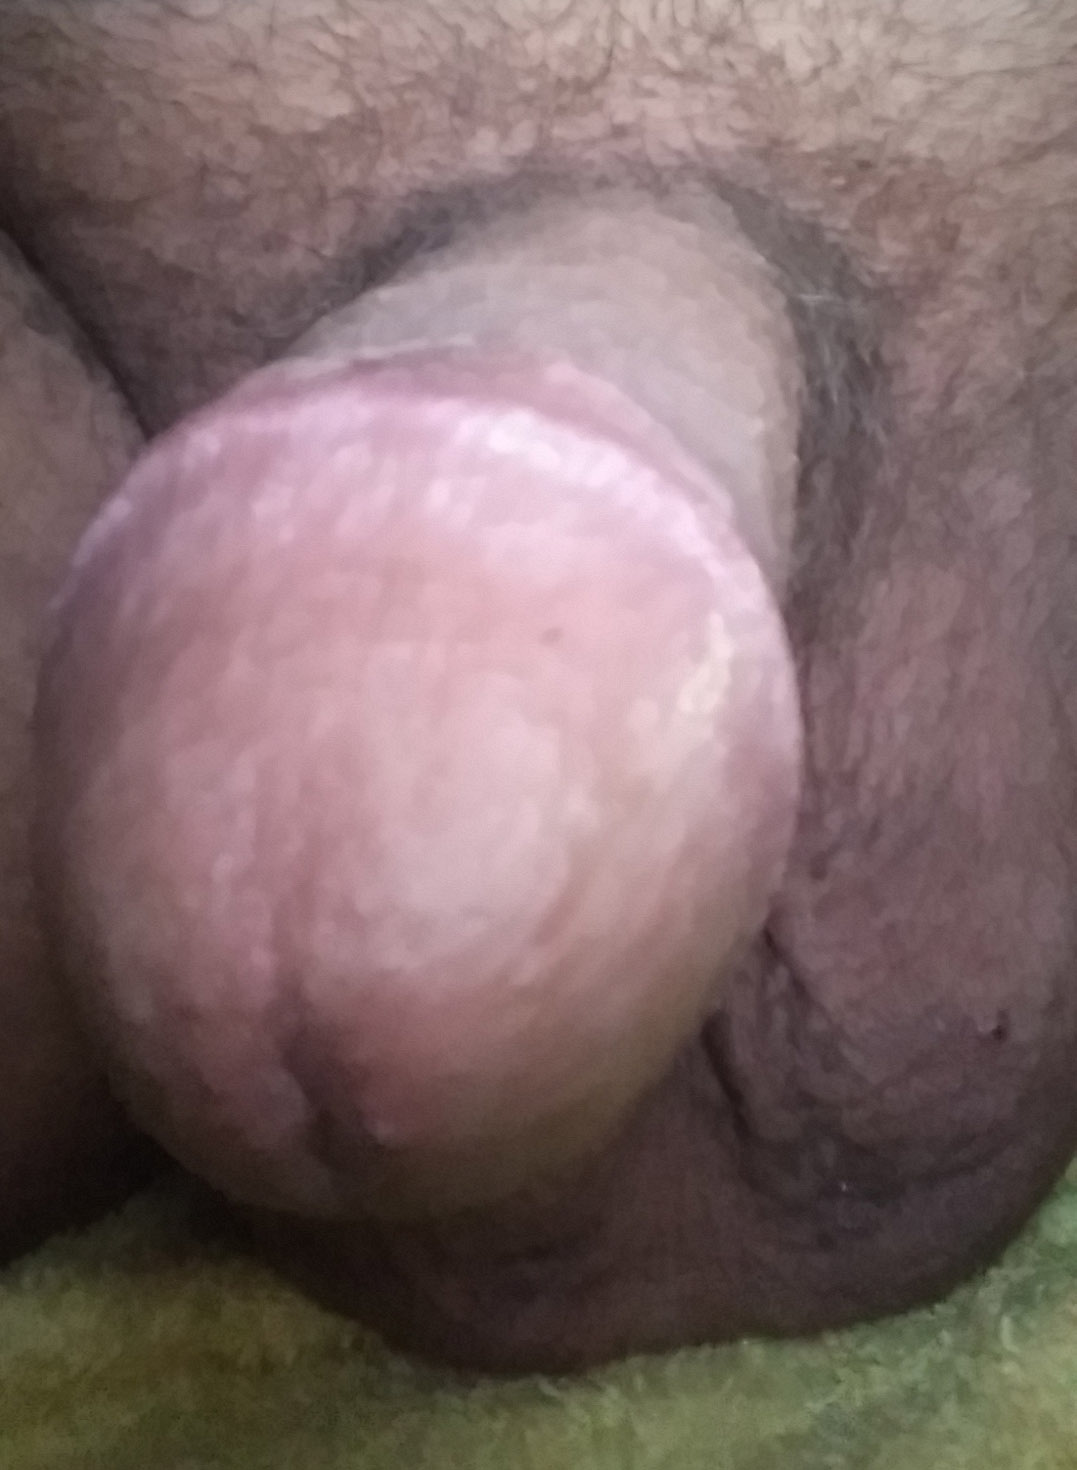 hosewives show dick slips